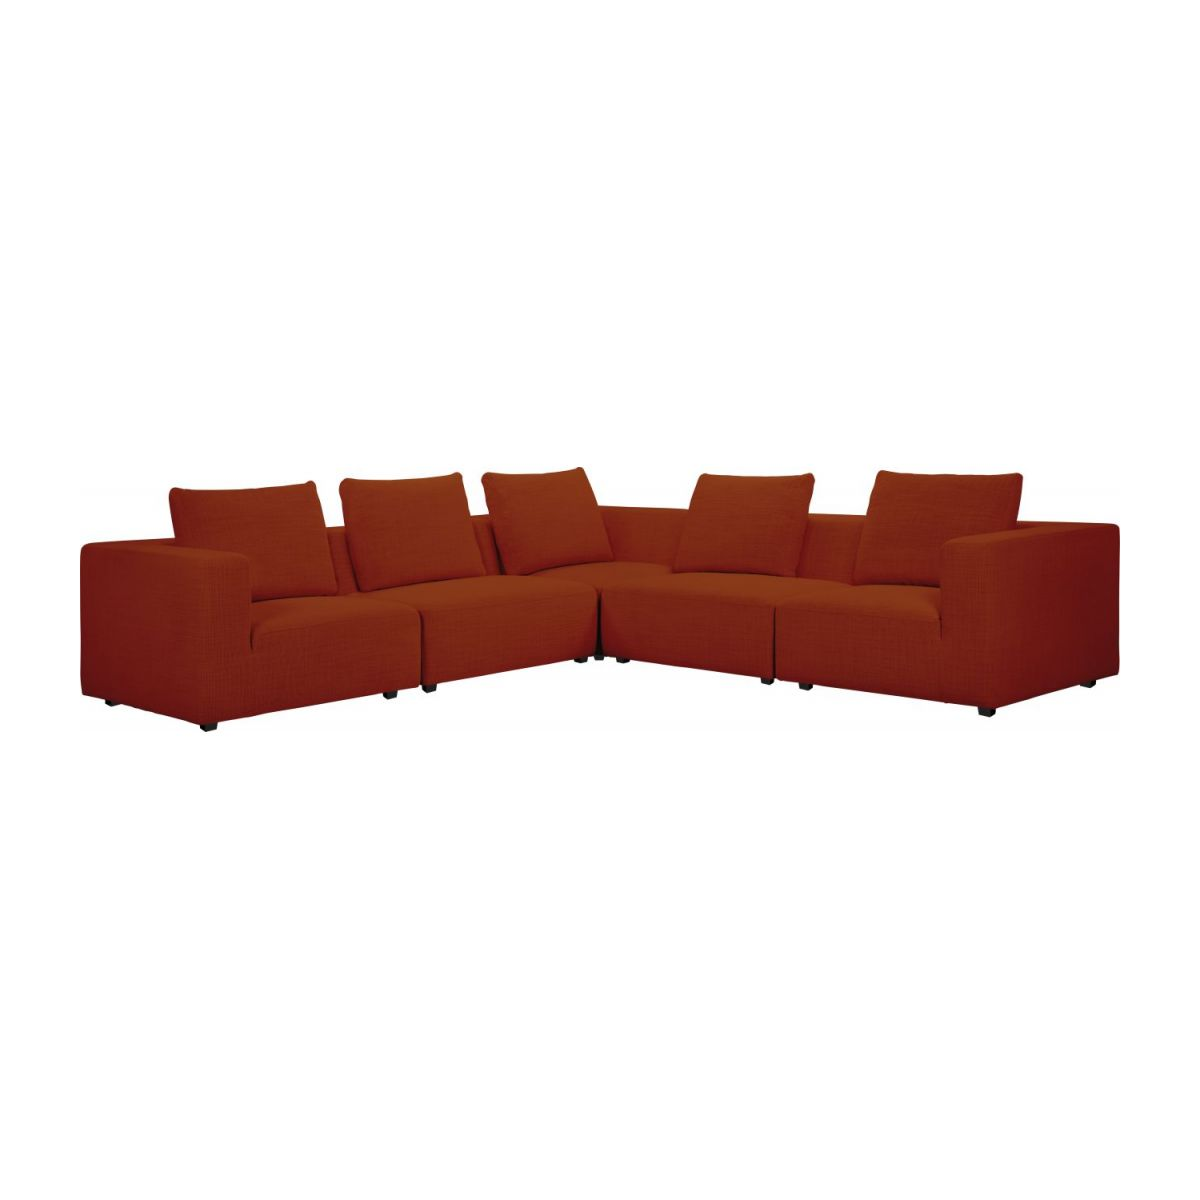 1,5 seater sofa with left armrest in Fasoli fabric, warm red rock n°9